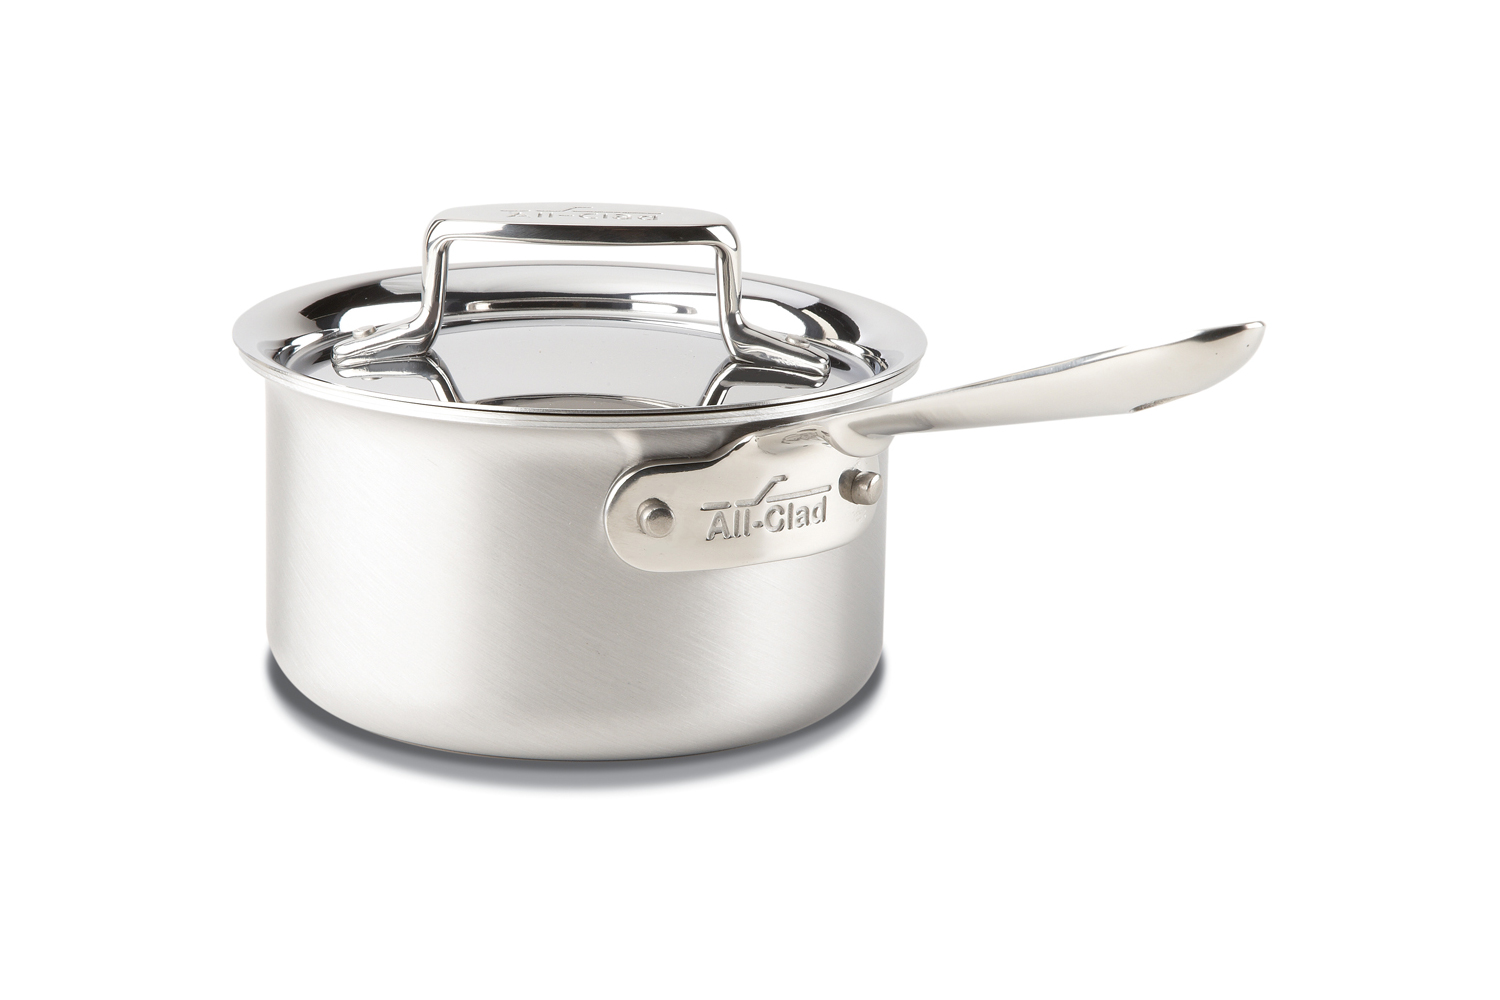 All-Clad d5 Brushed Stainless 1 1/2 qt. Sauce Pan w/Lid